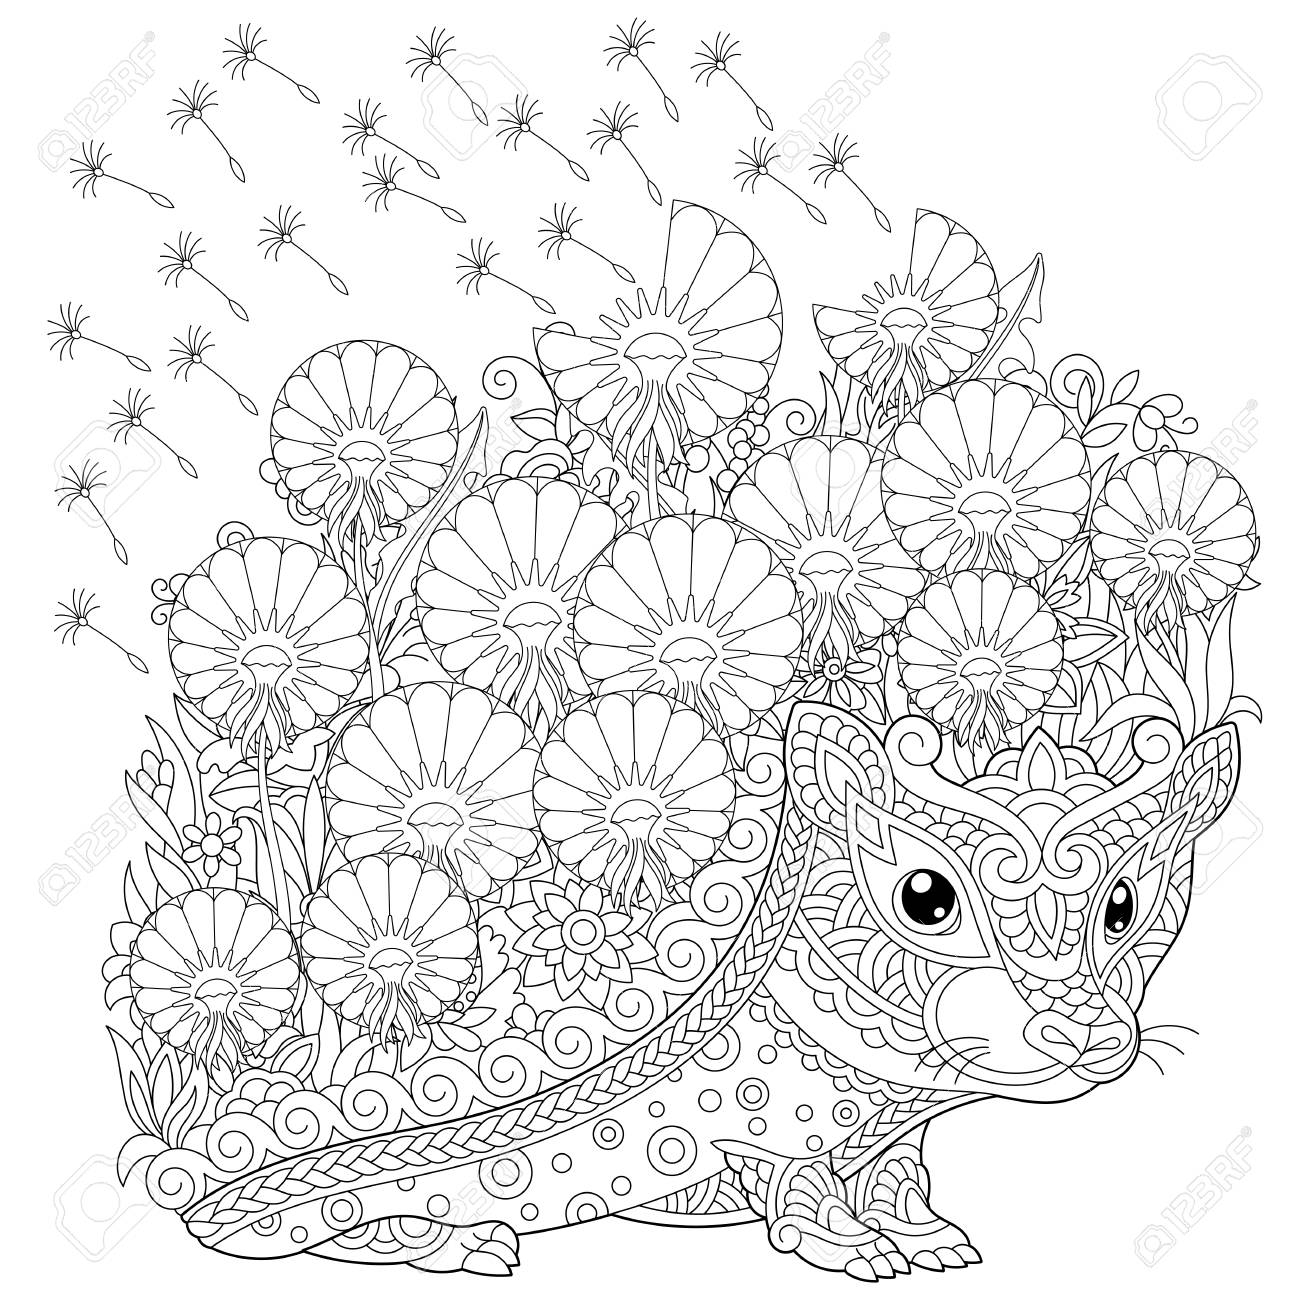 coloring page. Colouring picture with Hedgehog and spring flowers. Freehand sketch drawing for adult coloring book. - 118879881